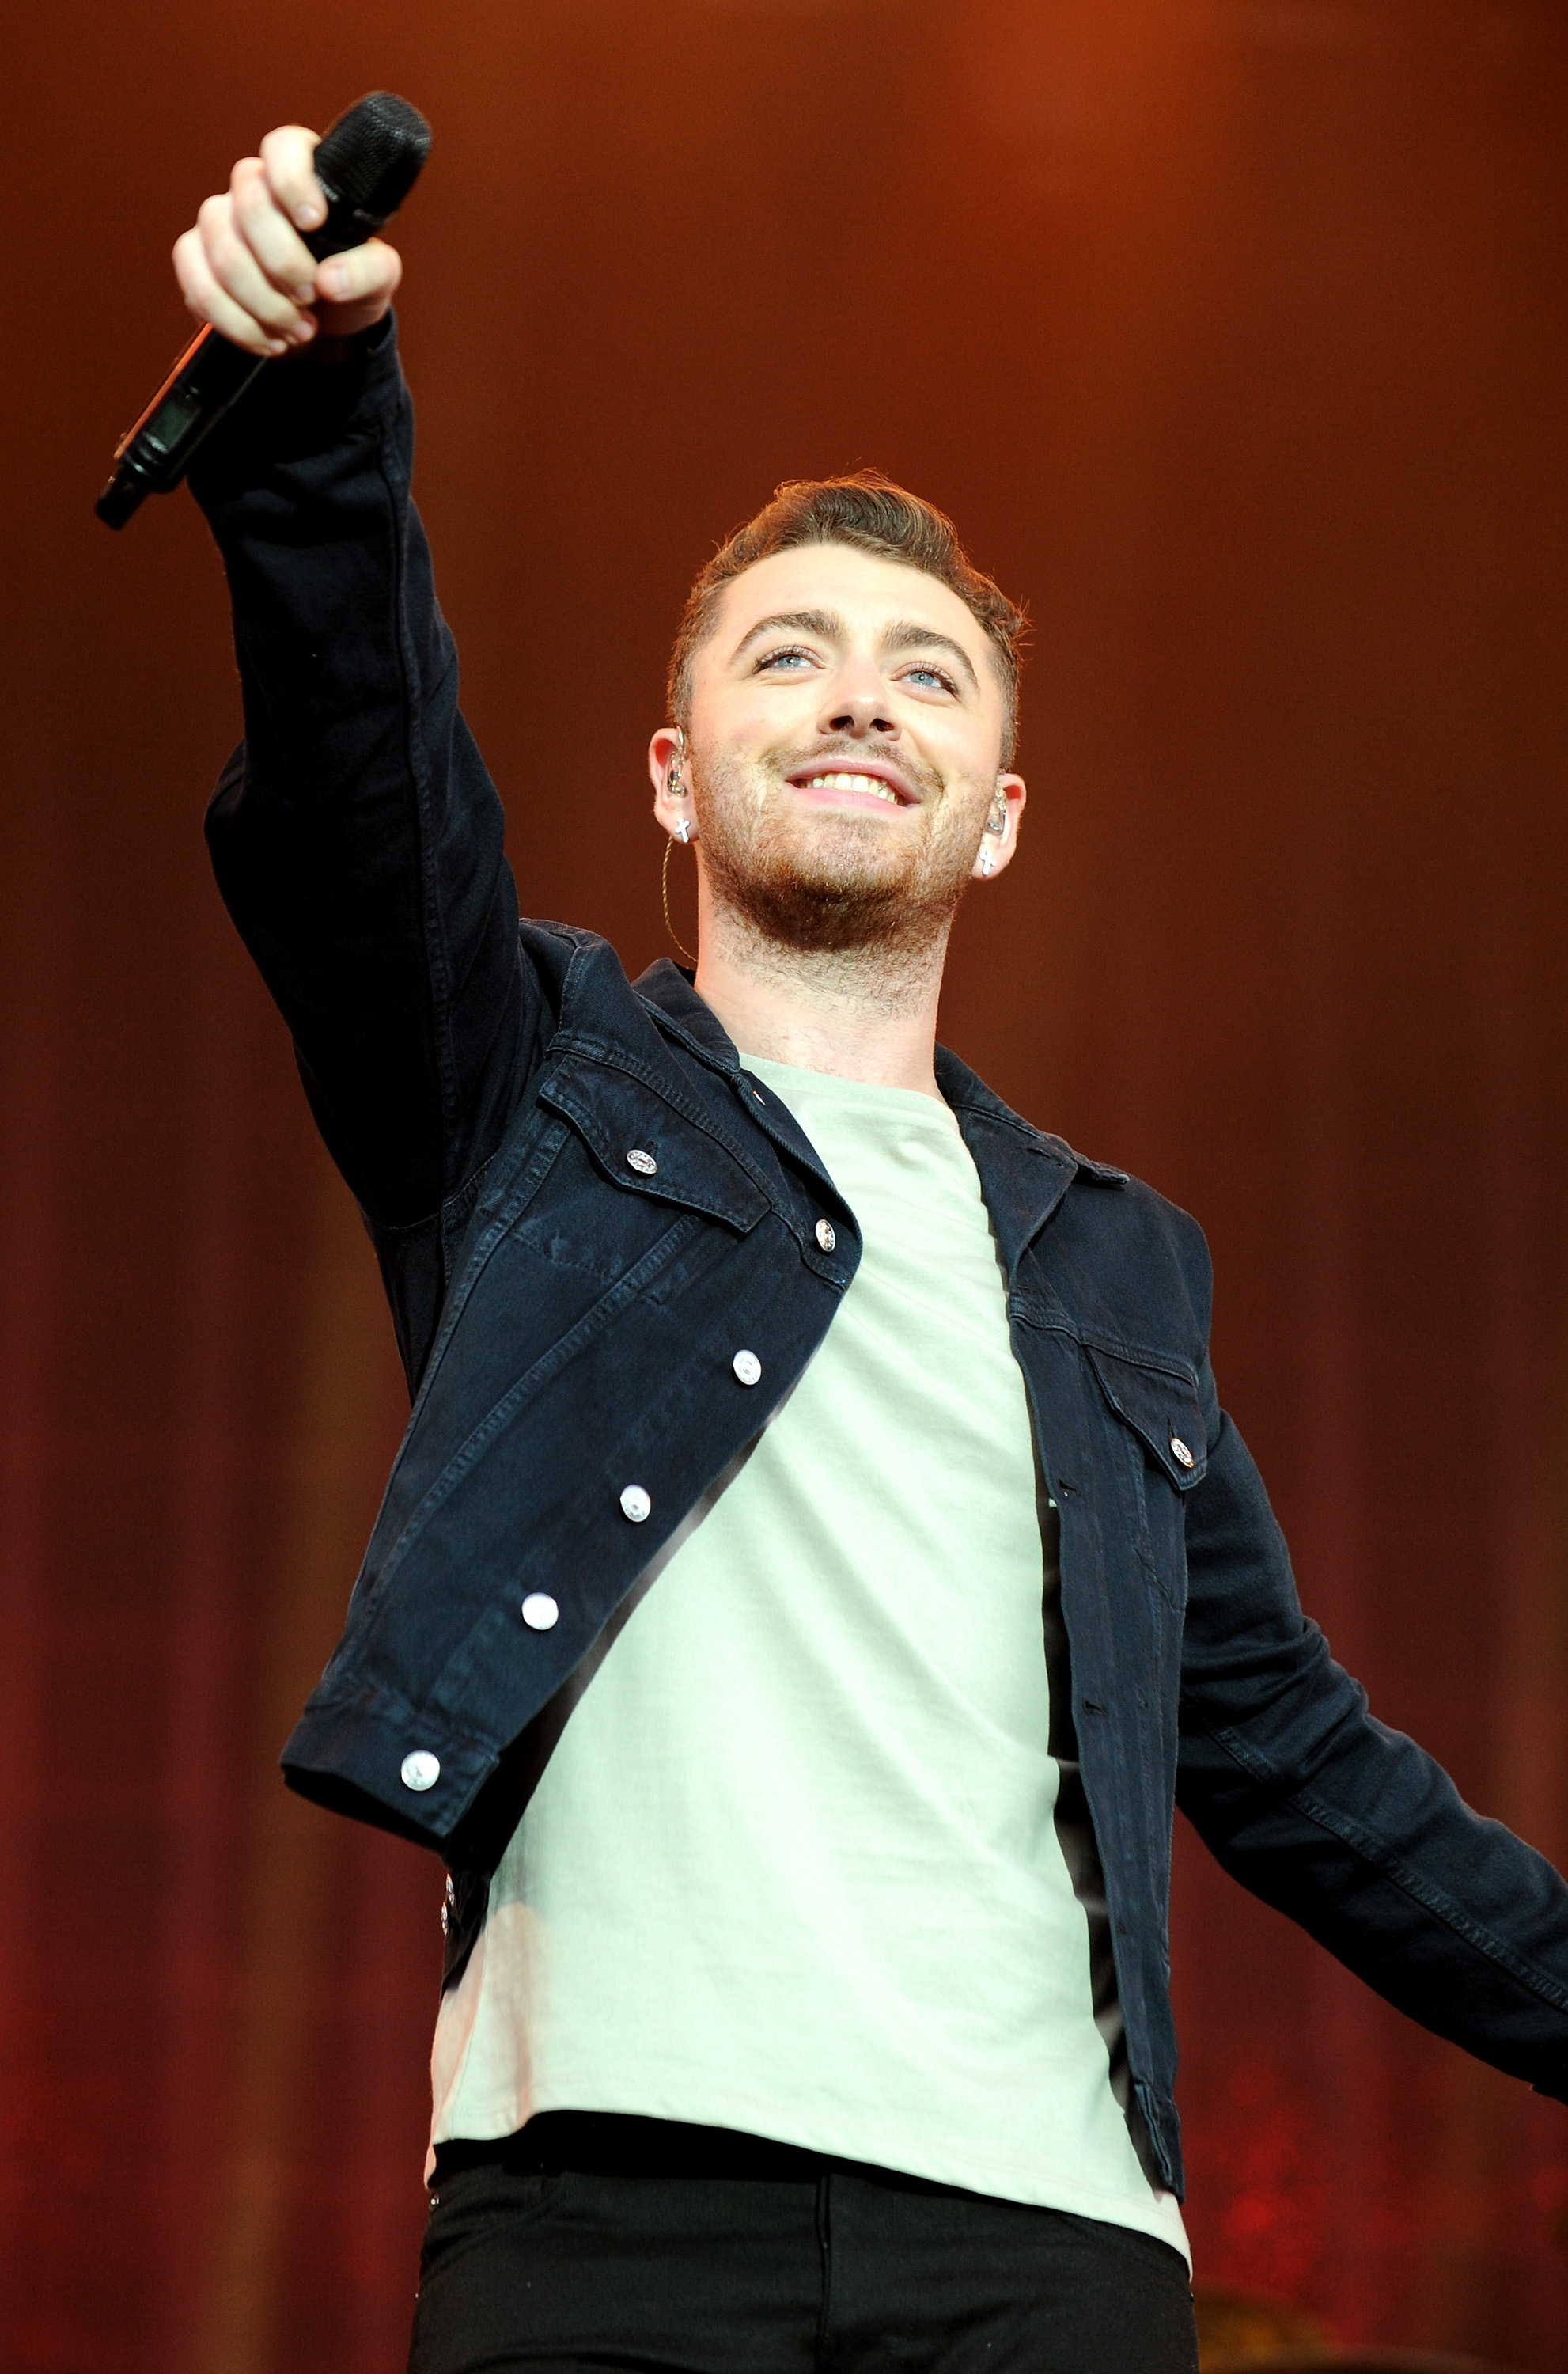 STAFFORD, ENGLAND - AUGUST 23: Sam Smith performs on Day 2 of the V Festival at Weston Park on August 23, 2015 in Stafford, England. (Photo by Shirlaine Forrest/WireImage)